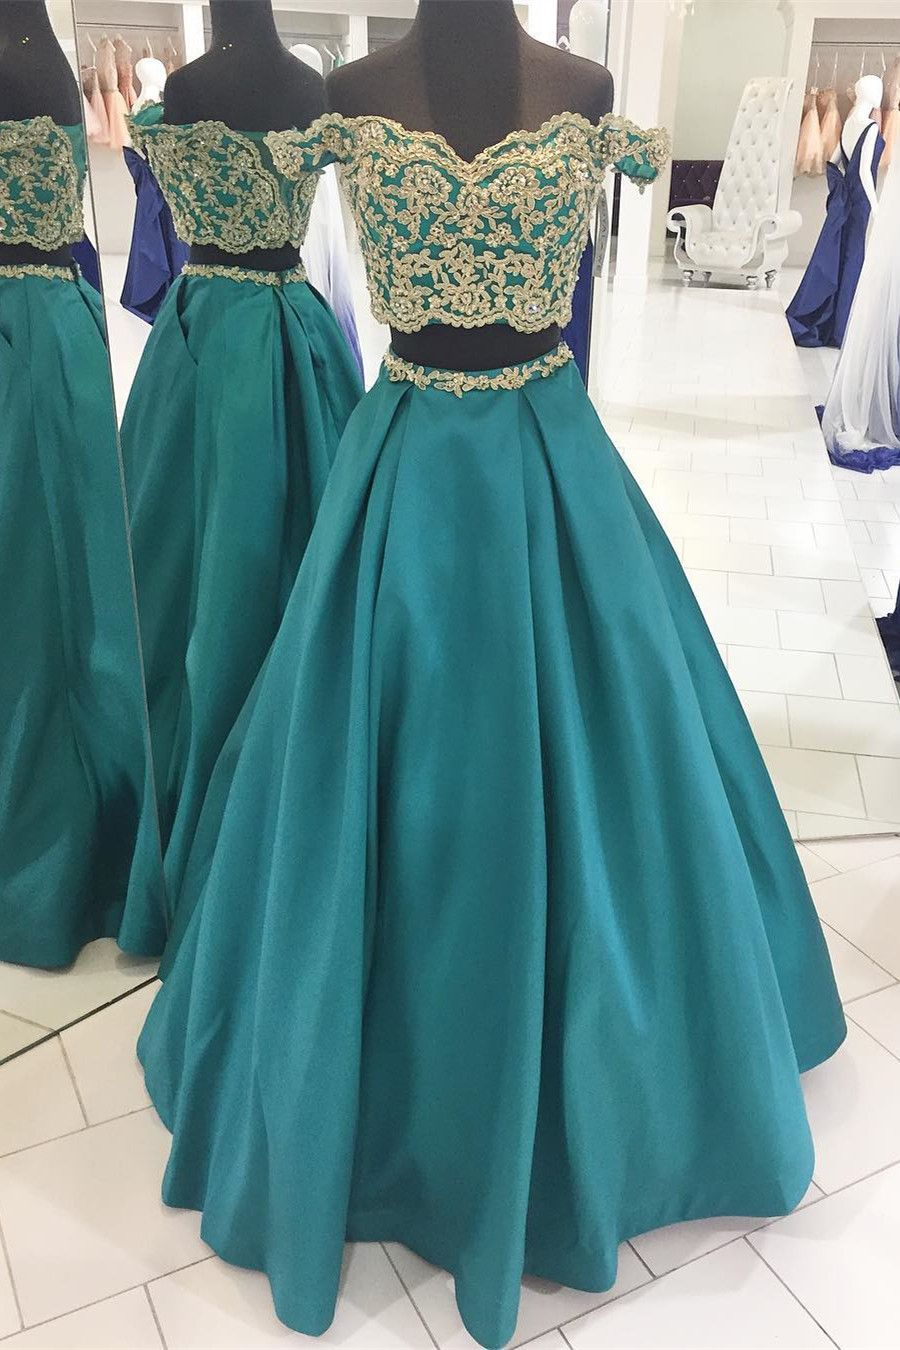 Two+Piece+Long+Prom+Dress,+Princess+Prom+Dress,+2k18+Prom+Dress,+ ...